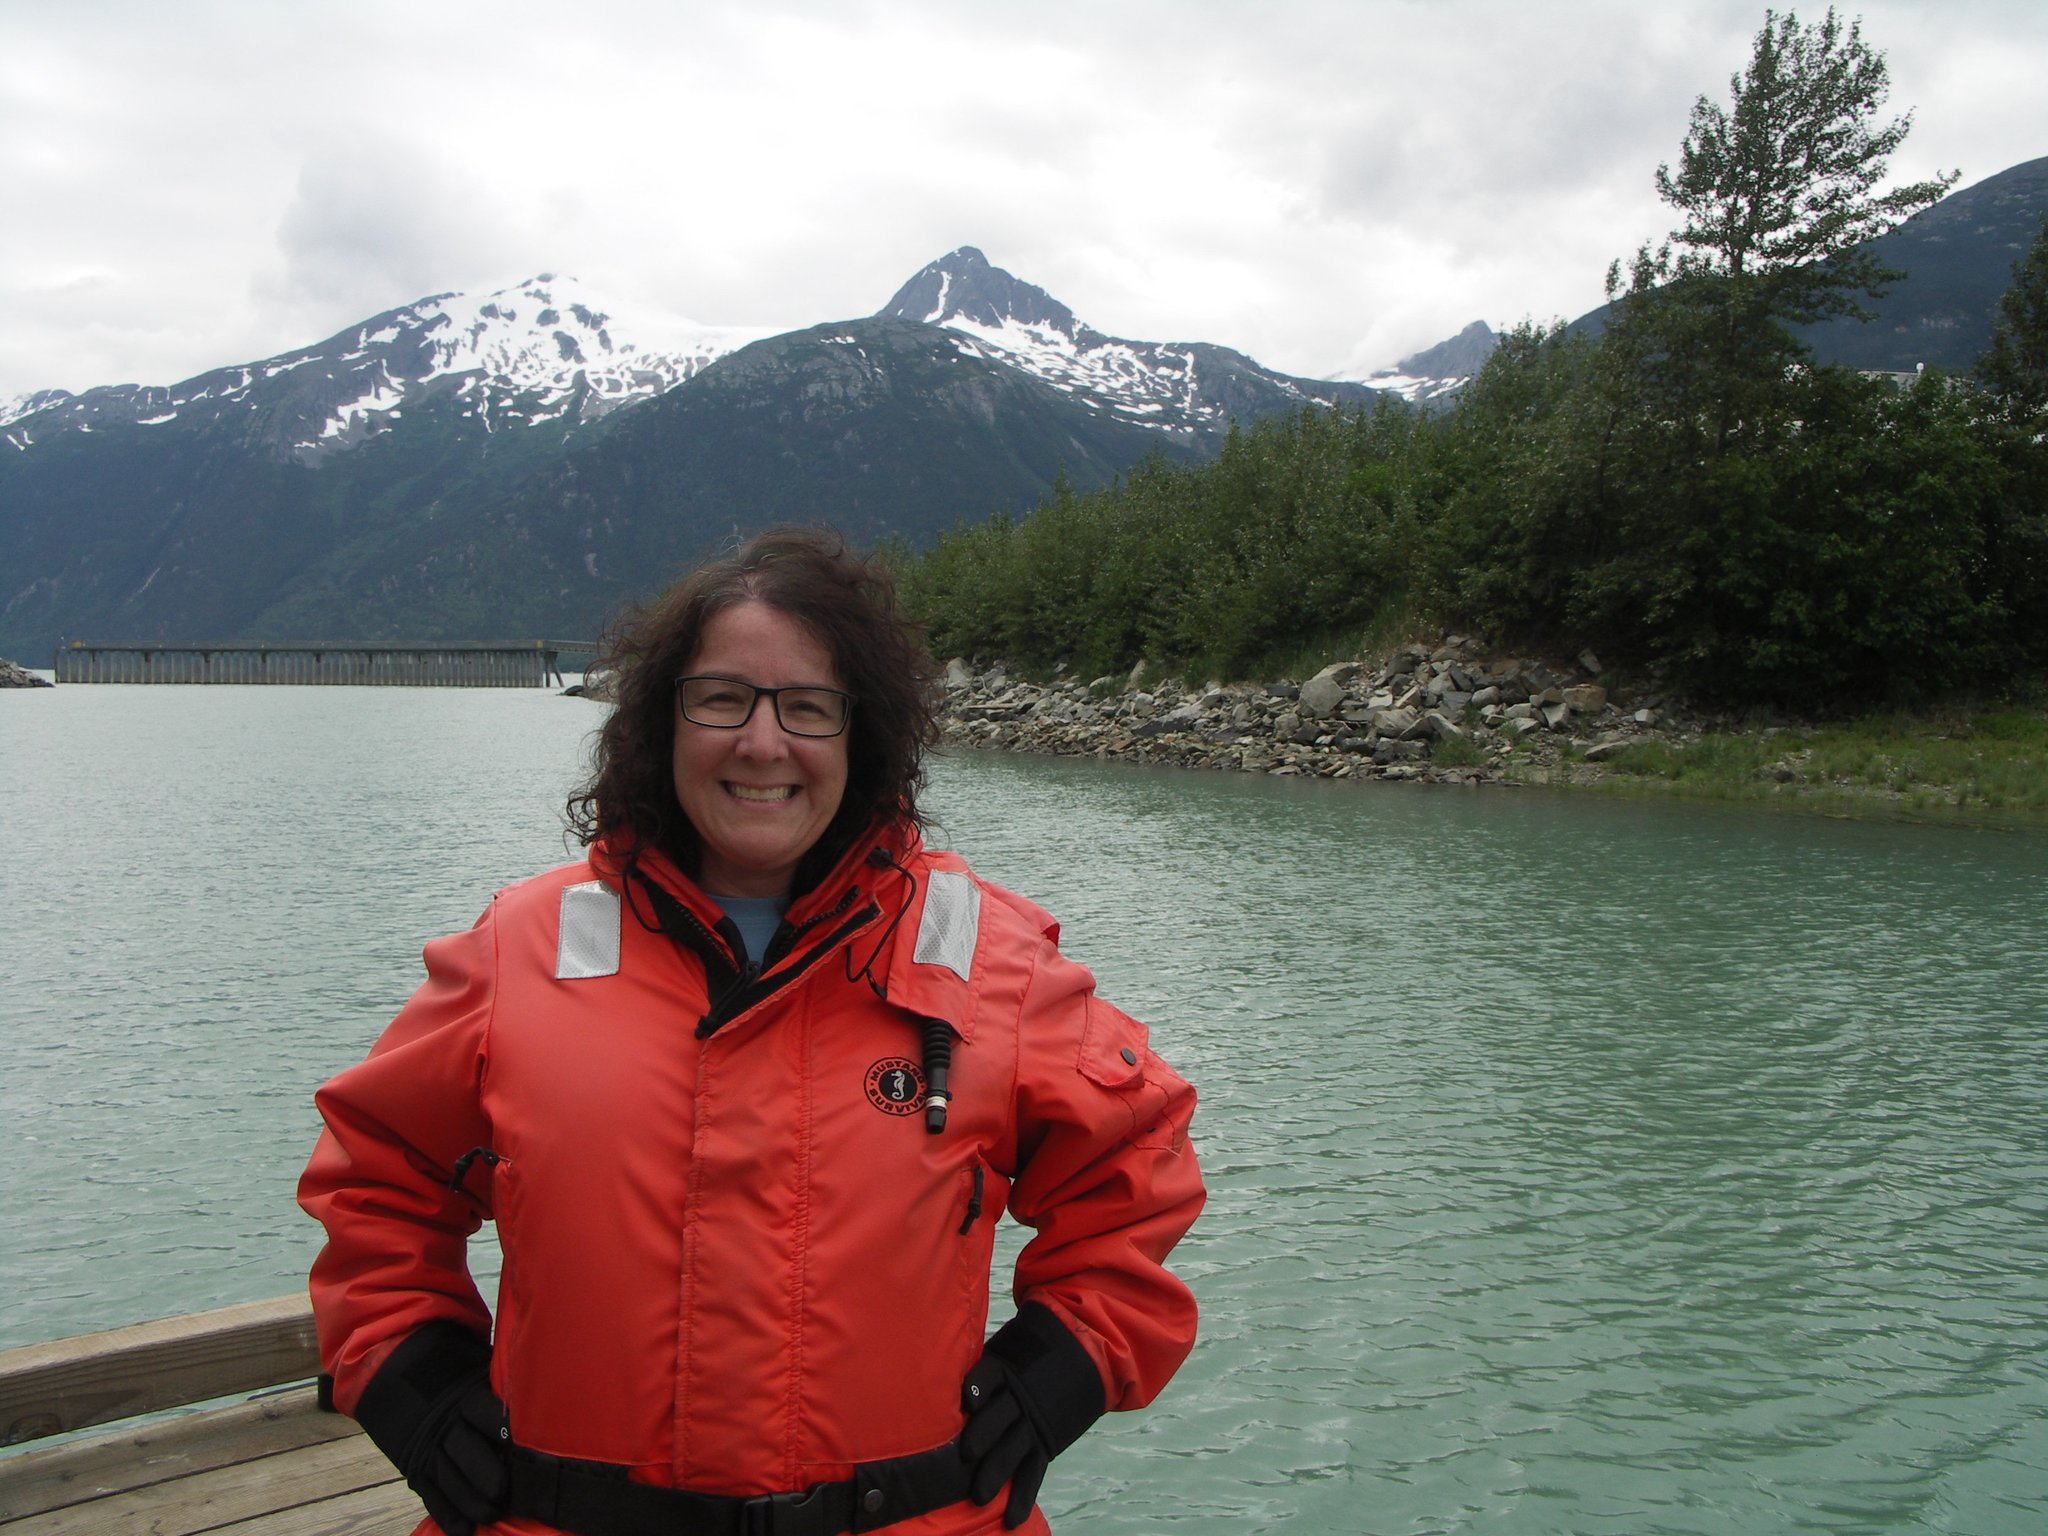 Hey geotweeps! Laura @Guertin here (@PSUBrandywine) for today's #SharingSciFri takeover! Posts will incl. #sciart, engaging students & more! https://t.co/MMUziAPZ89